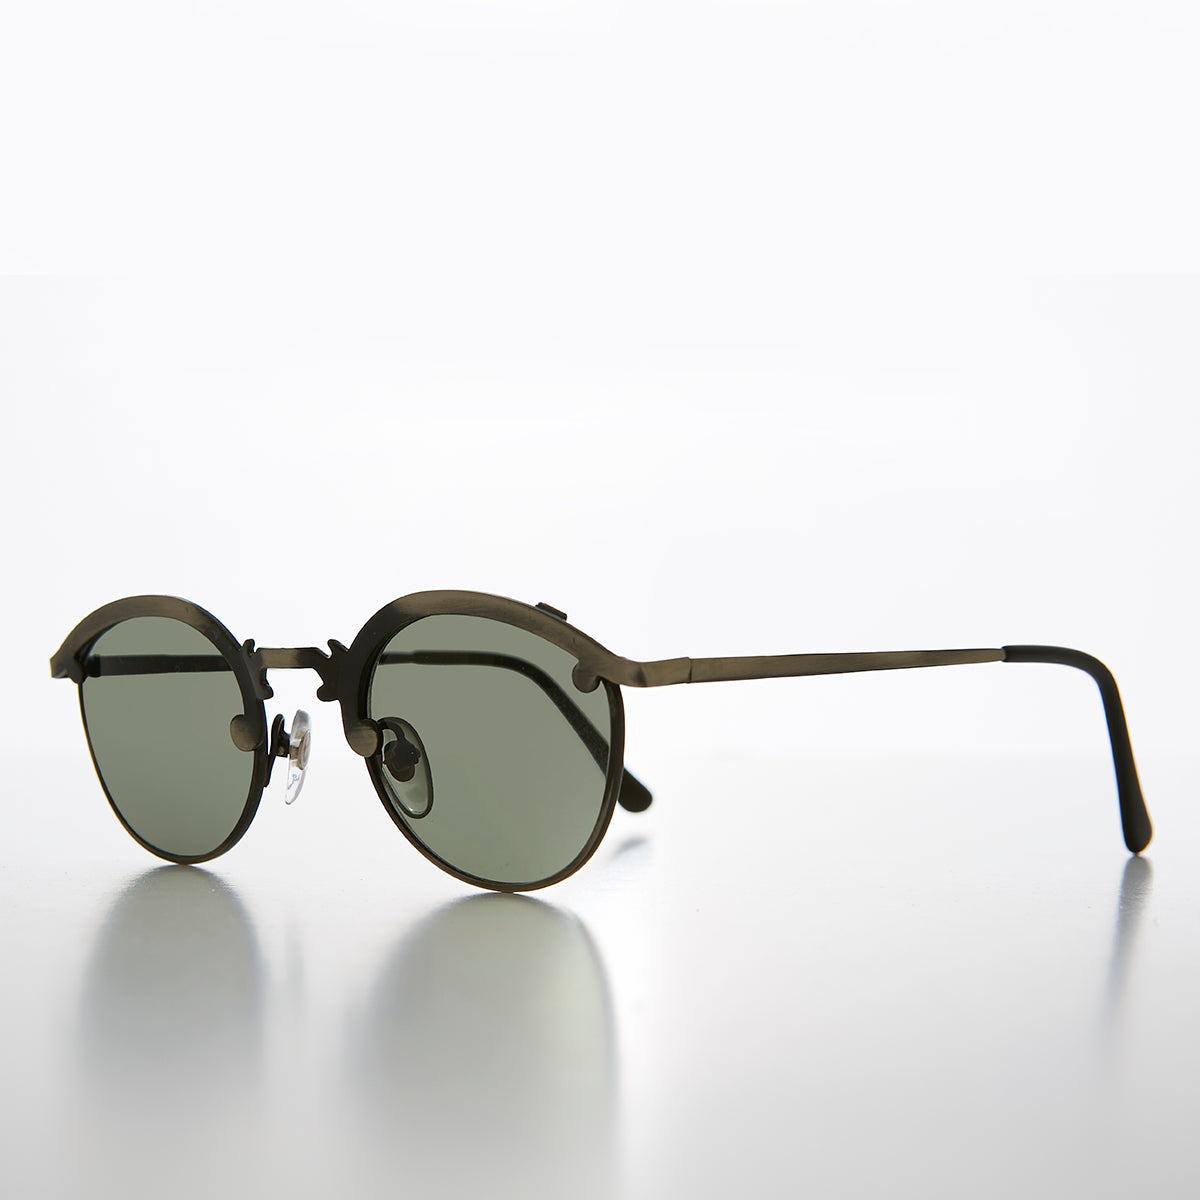 Round 90s Metal Unique Sunglass with Arrow Nose Bridge